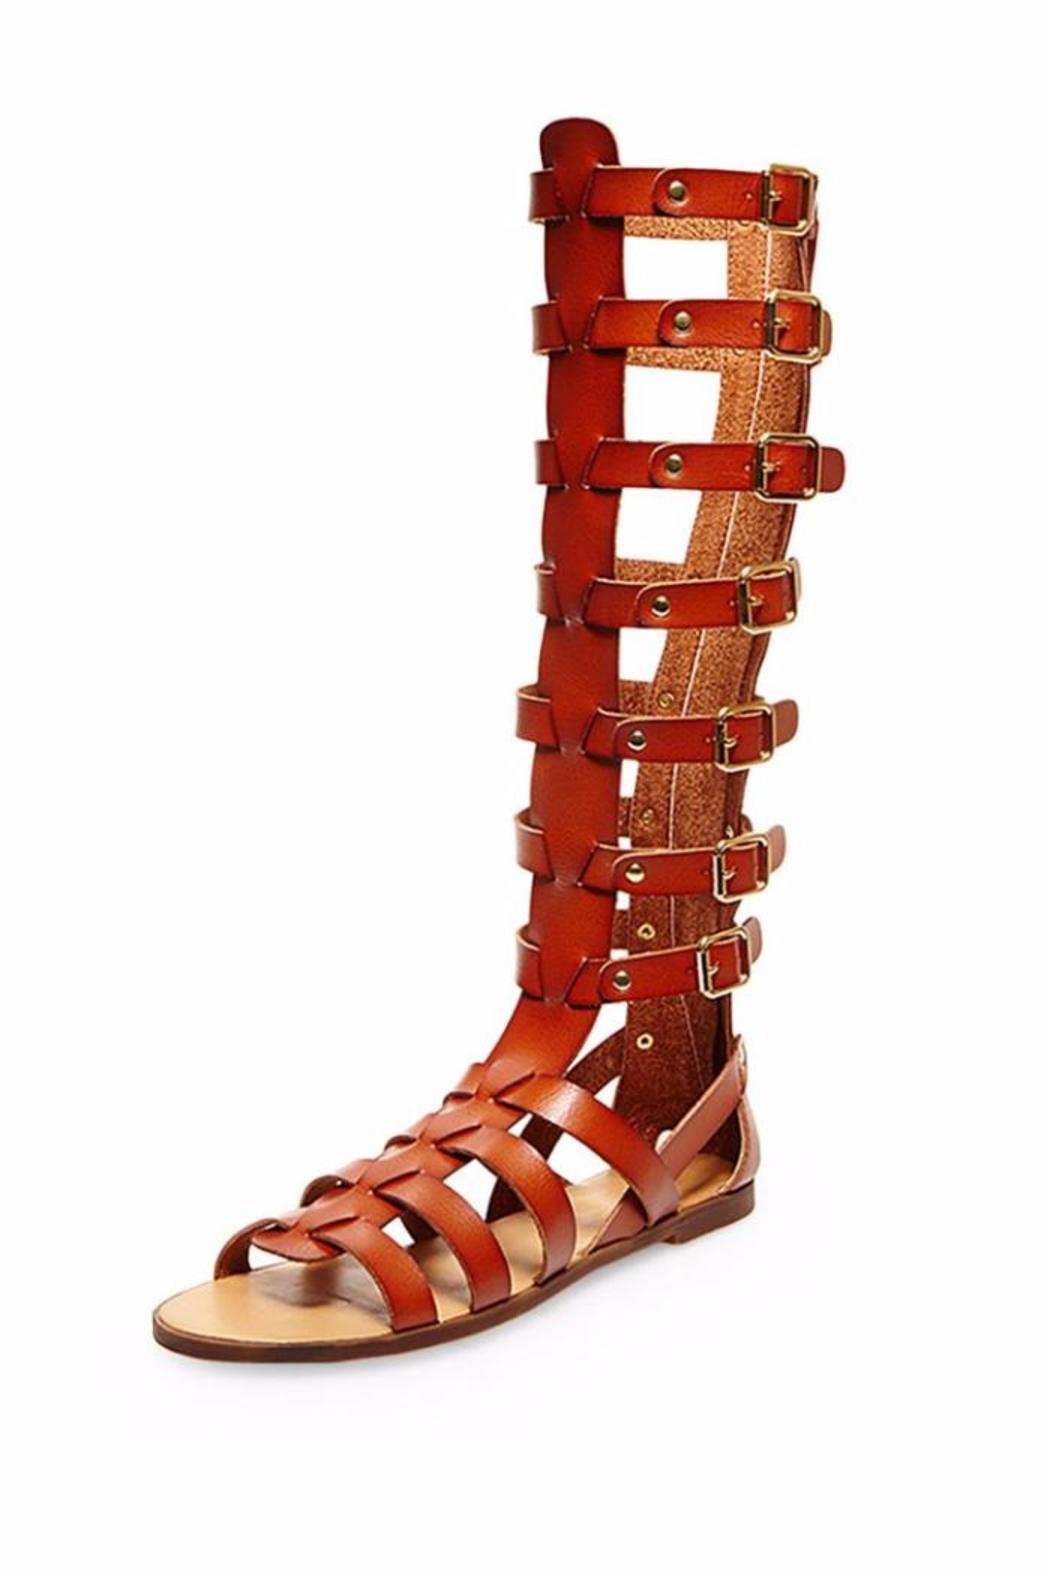 9672e47c280 Steve Madden Penna Tall Gladiator from Long Island by InMotion ...